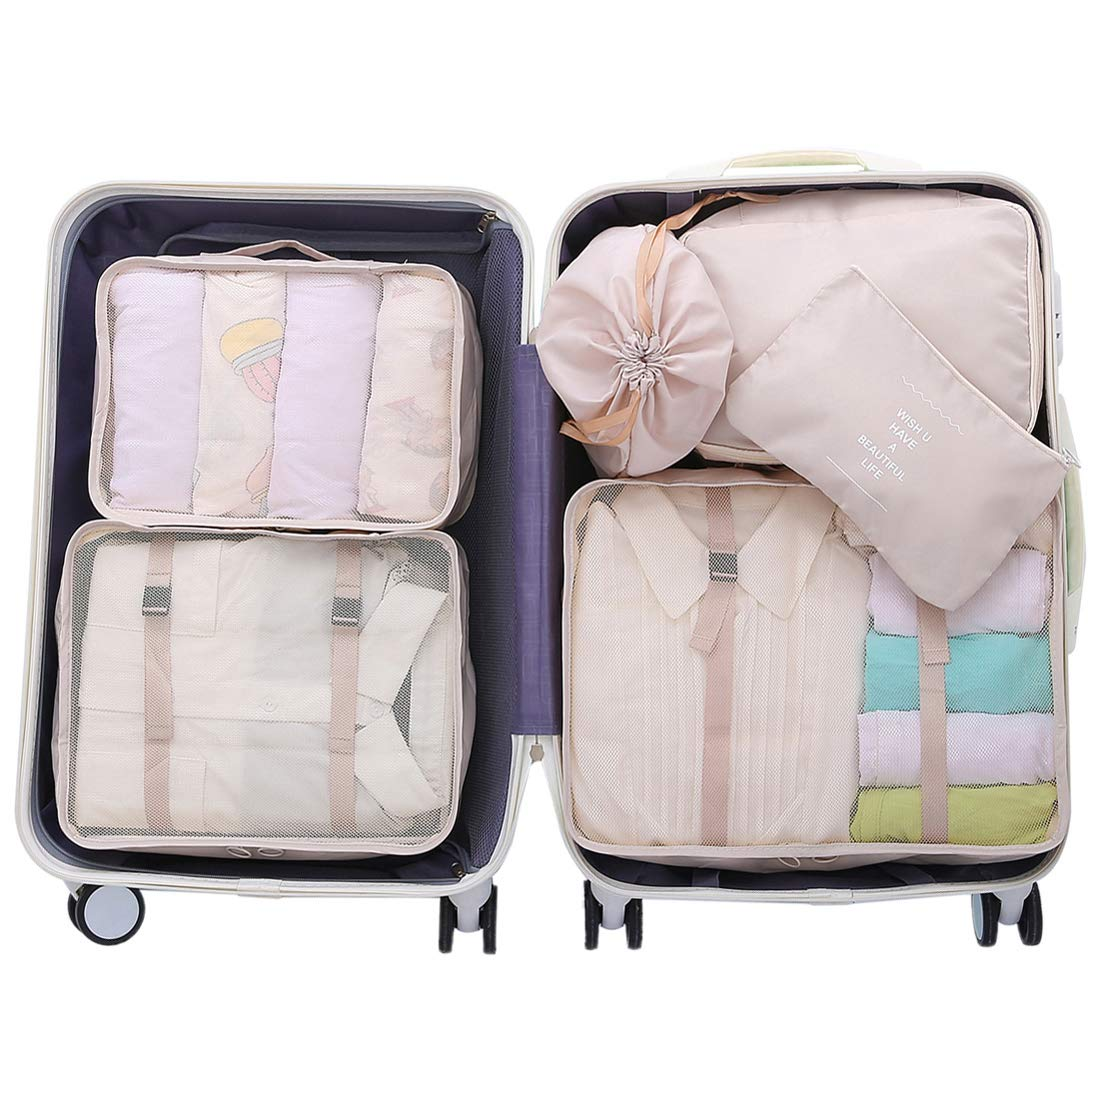 OEE Luggage Packing Organizers Travel